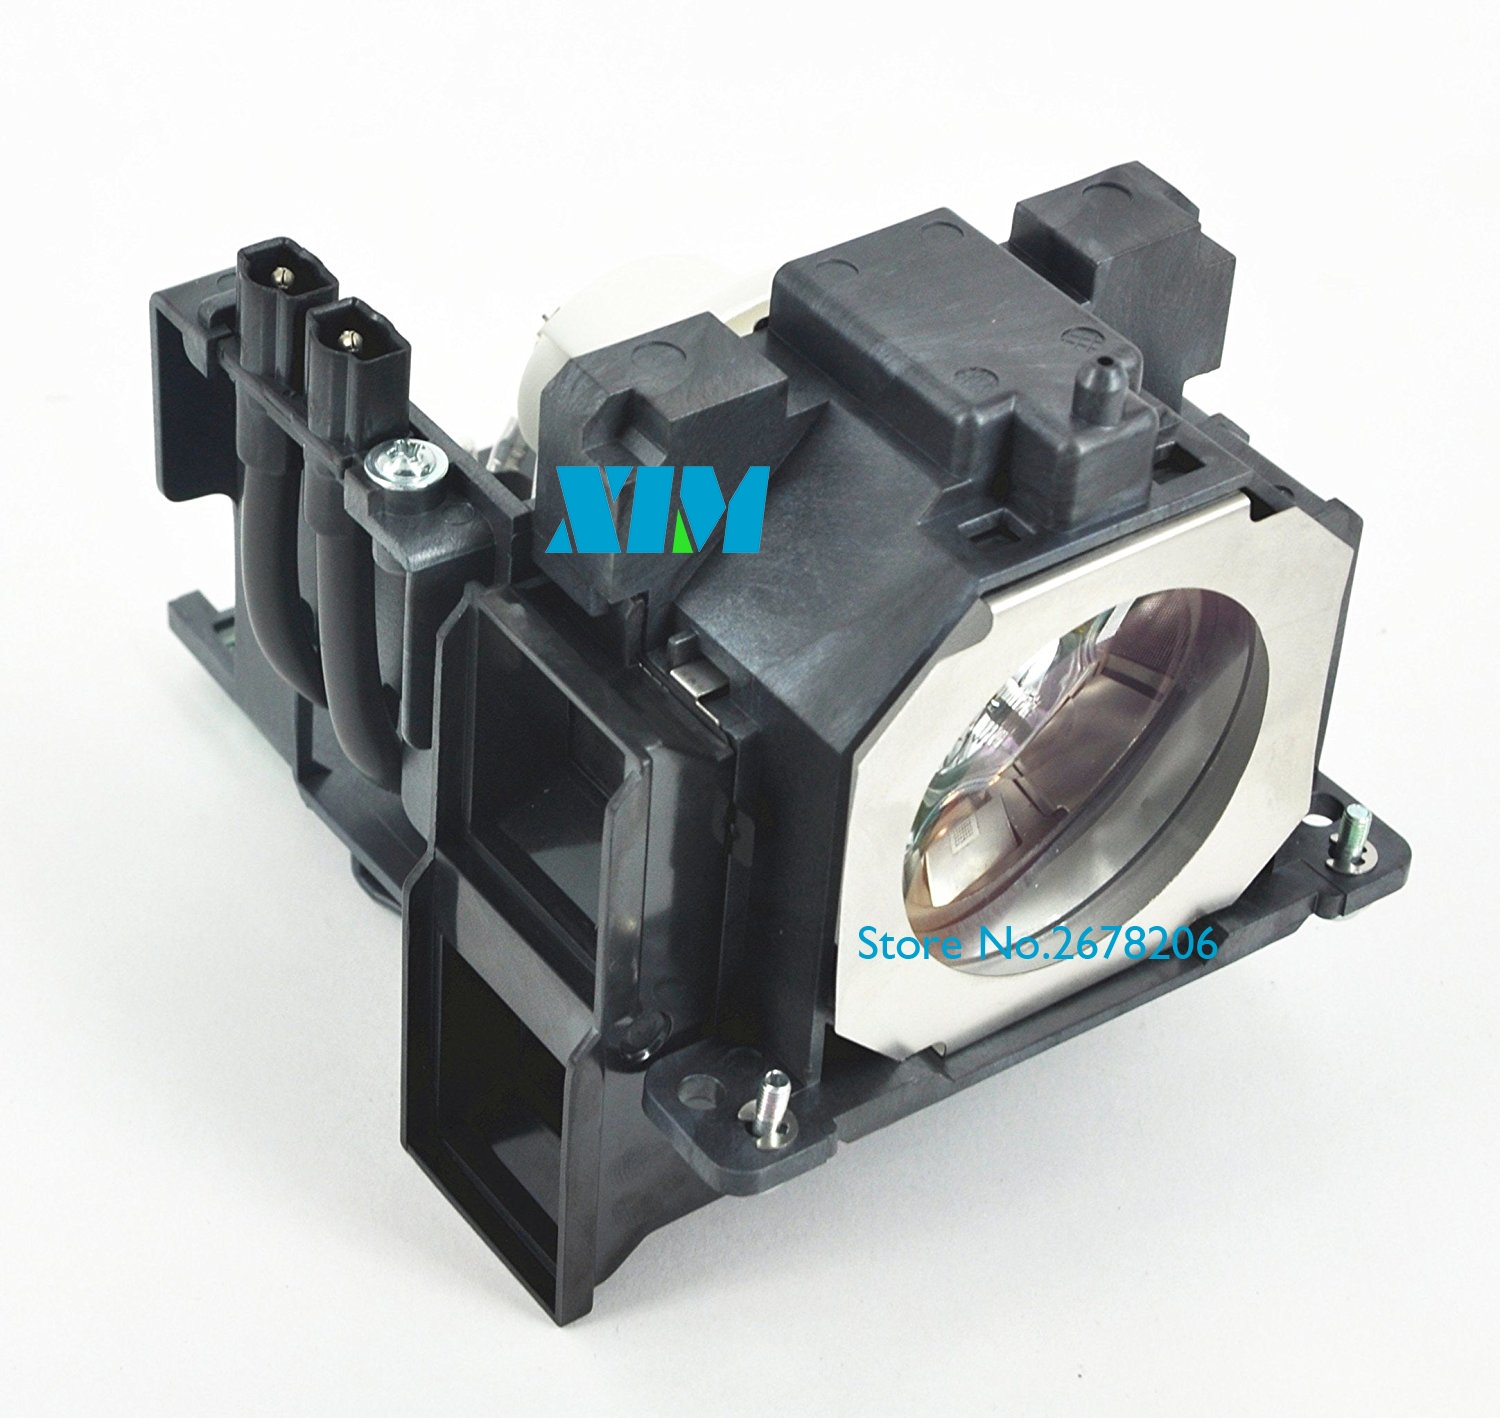 Free Shipping ET-LAE300C ET-LAE300  Projector lamp with housing for Panasonic PT-EX510 PT-EZ580 PT-EX610 PT-SLZ77C/CL PT-Z770ZL free shipping projector lamp projector bulb with housing et laa410 fit for pt ae8000 pt ae8000u